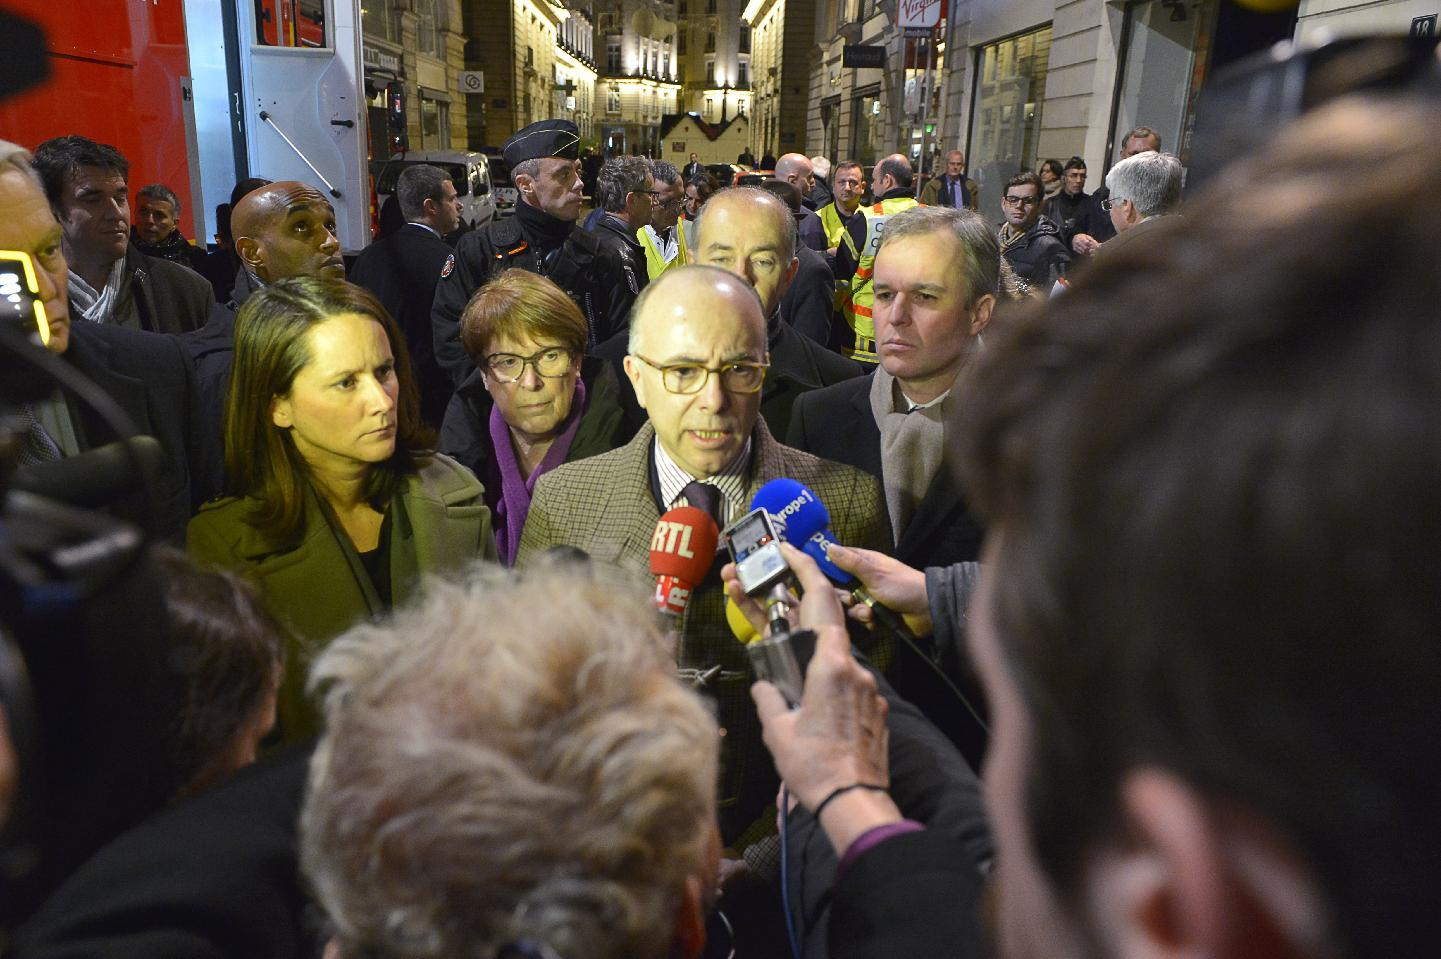 French Interior Minister Bernard Cazeneuve (C) speaks to journalists at the scene where a driver ploughed into a Christmas market in Nantes on December 22, 2014 (AFP Photo/Georges Gobet)